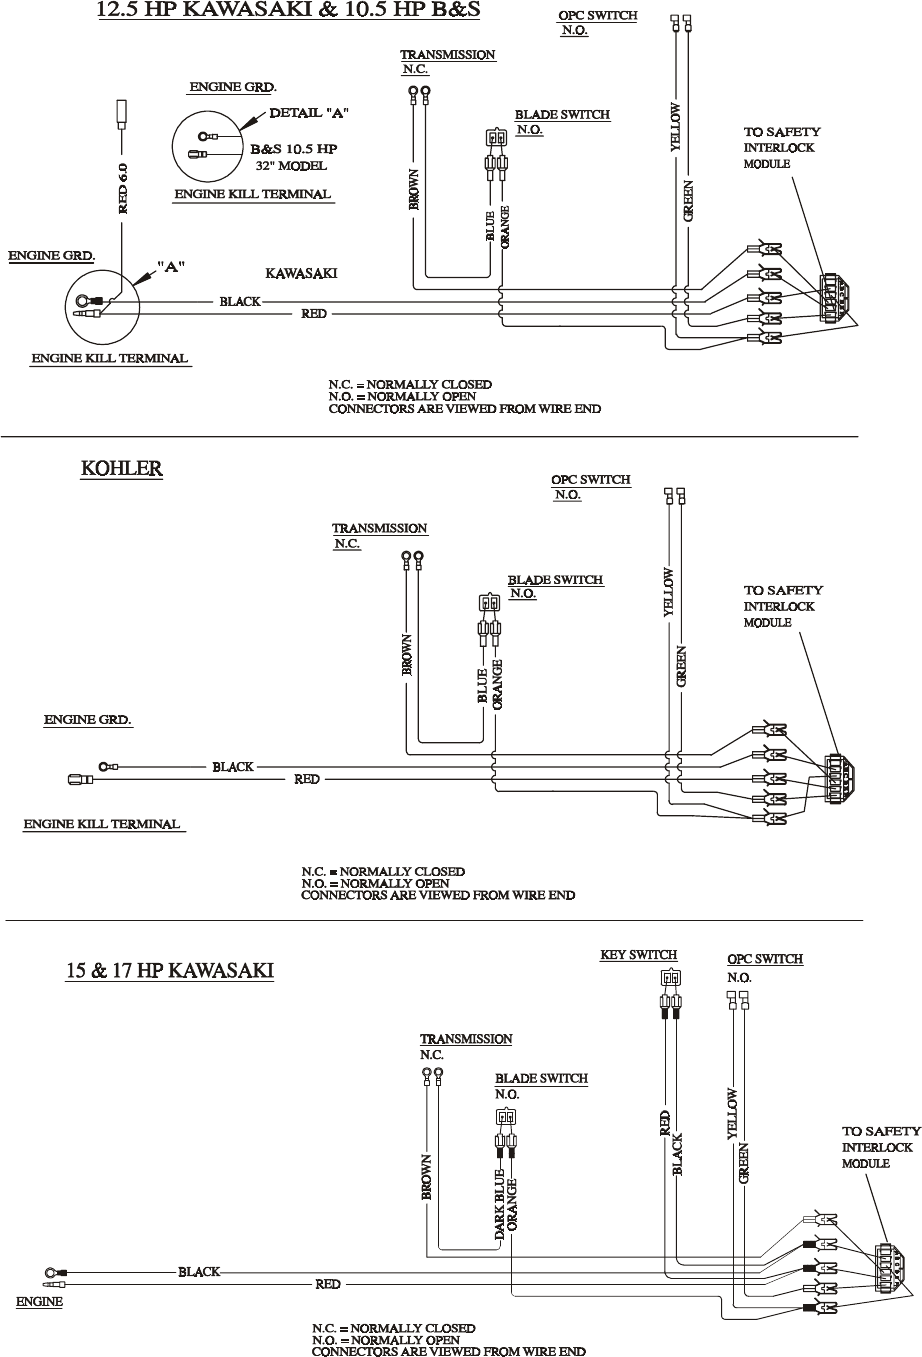 fa869892 6c99 4c24 afcd a612459af1d0 bg27 page 39 of exmark lawn mower metro user guide manualsonline com exmark wiring diagram at readyjetset.co